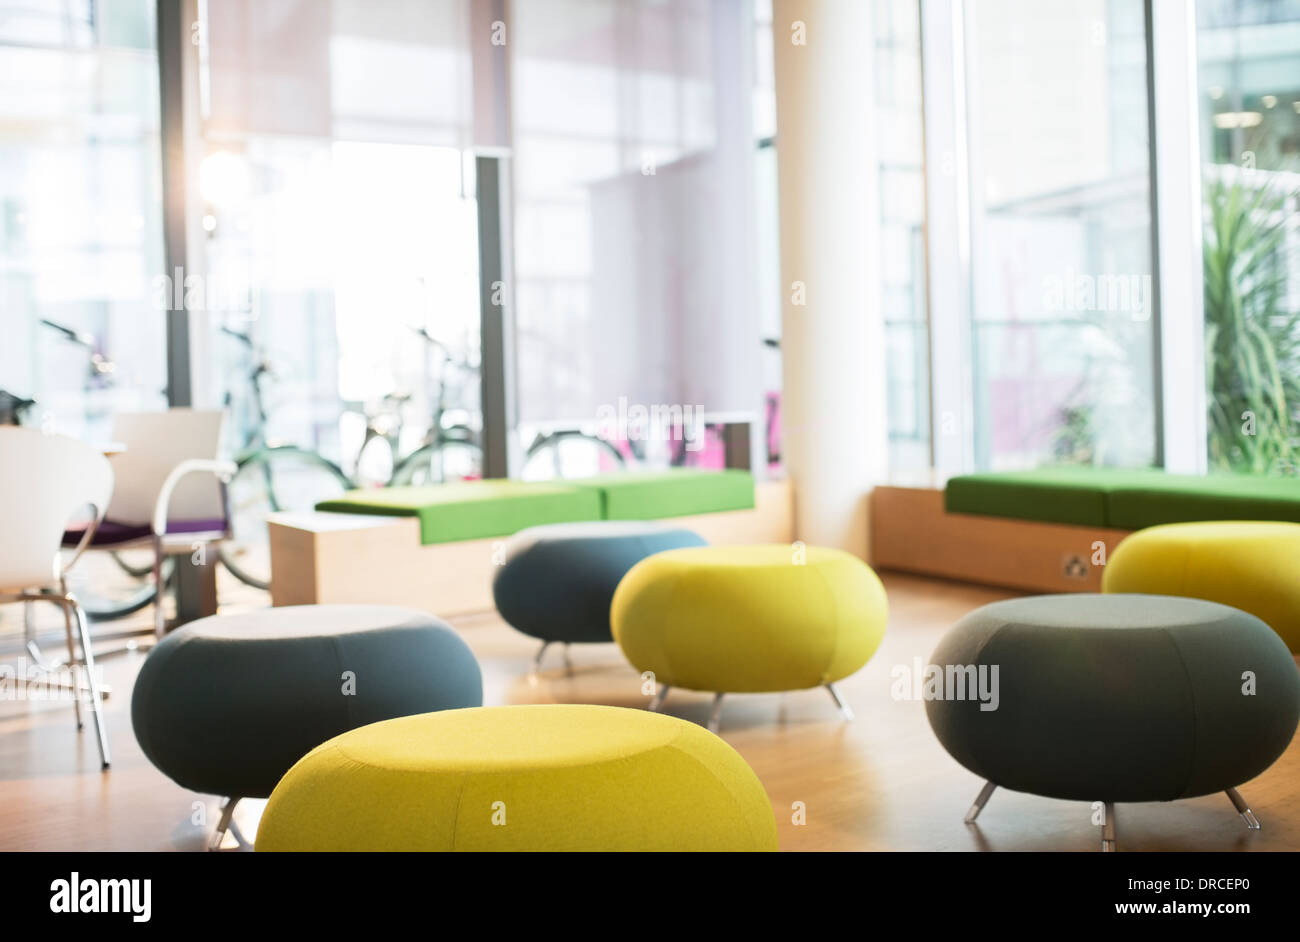 Chairs and tables in empty lounge - Stock Image